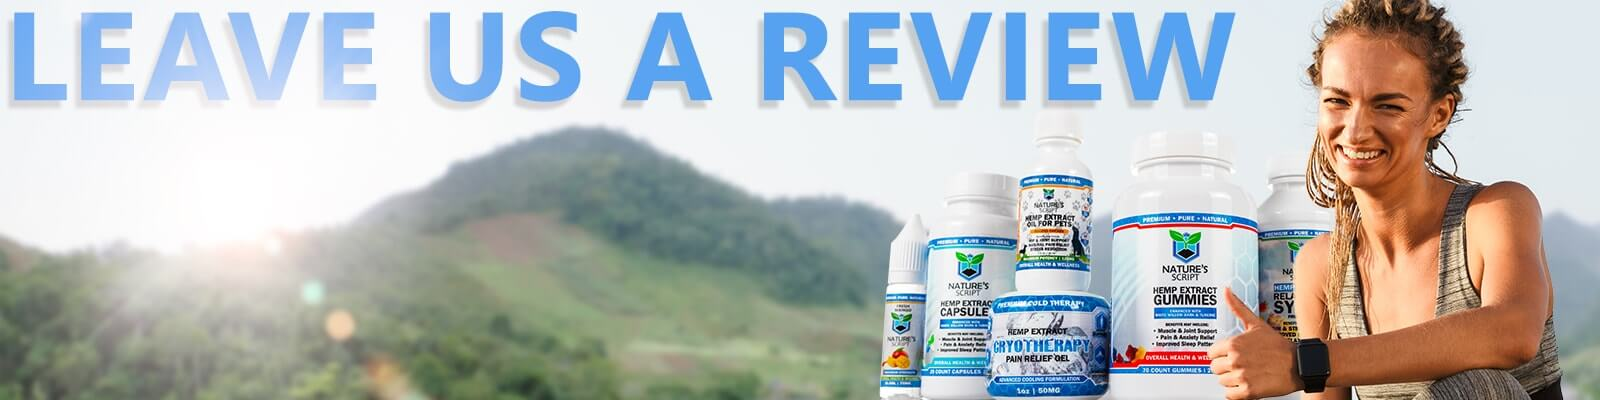 cbd review banner